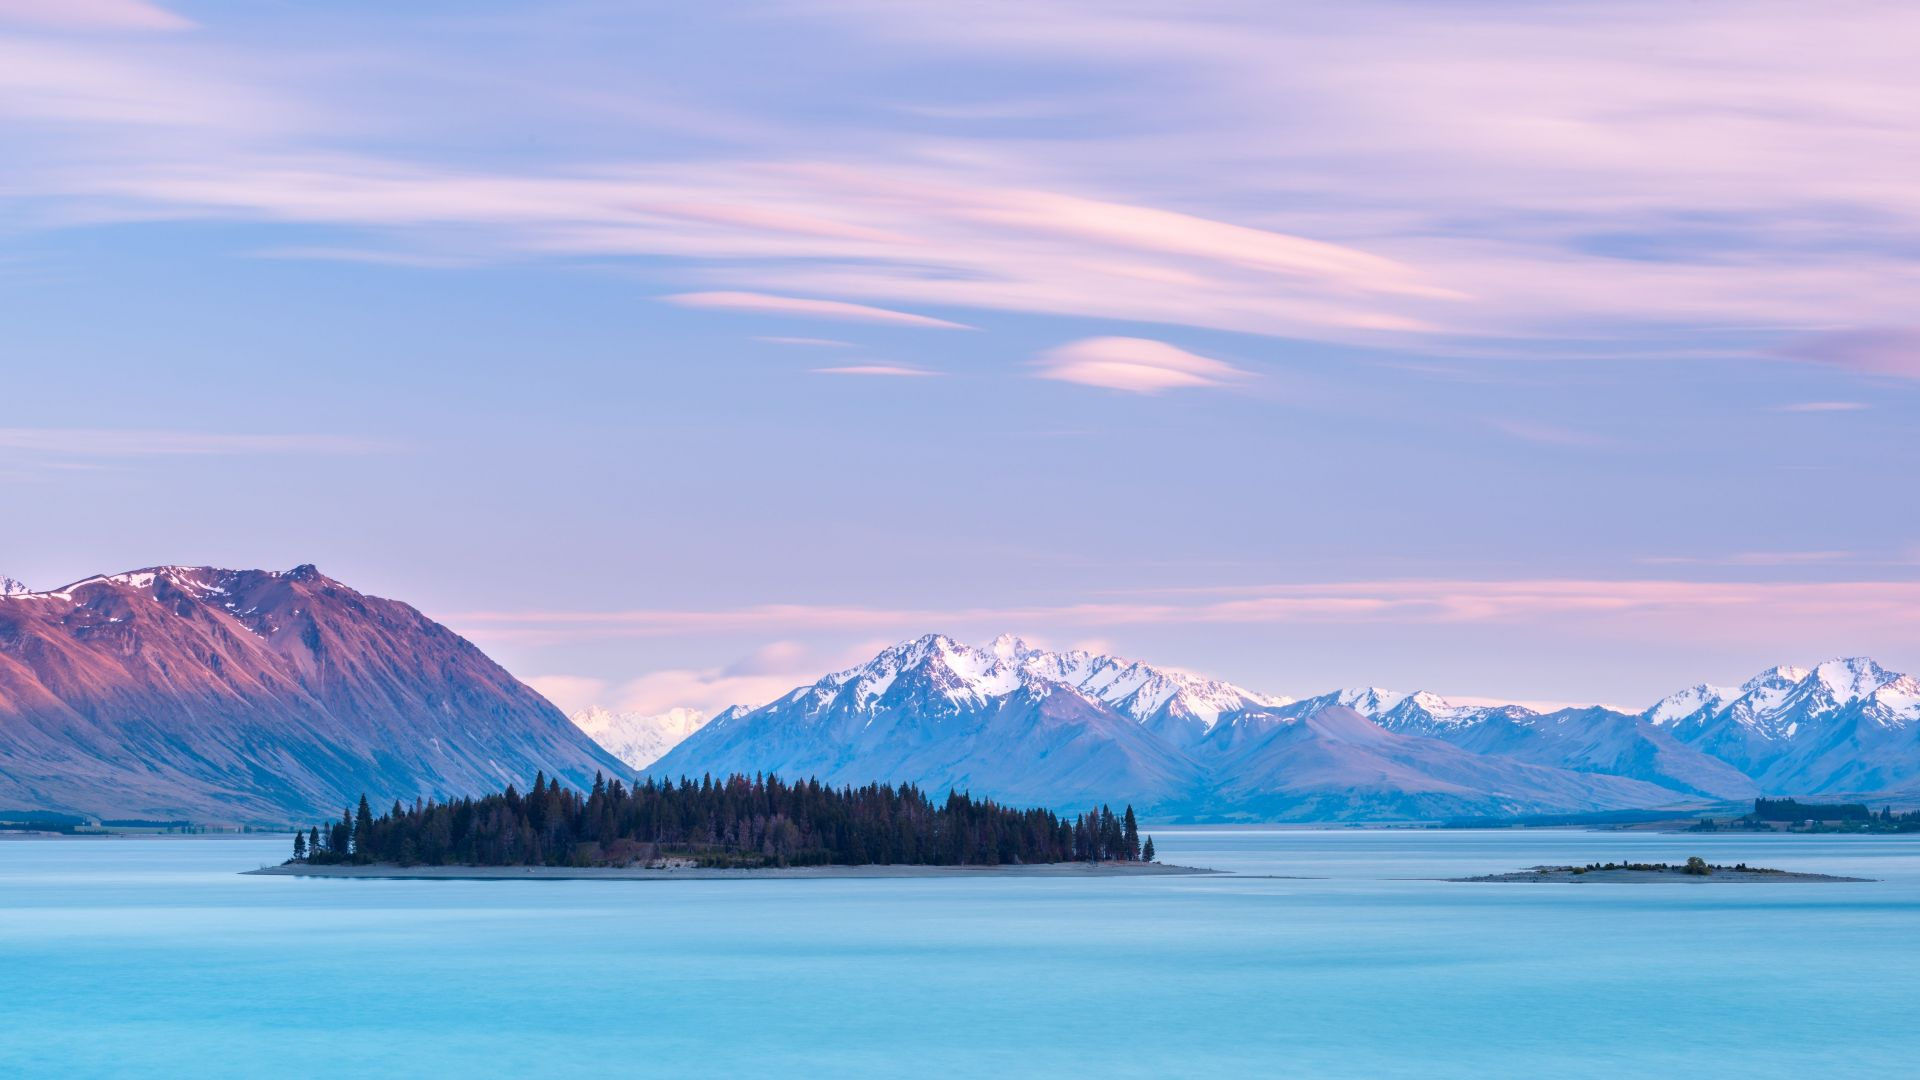 Озеро Текапо, Новая Зеландия, Lake Tekapo, New Zealand, mountains, sky clouds, 8k (horizontal)